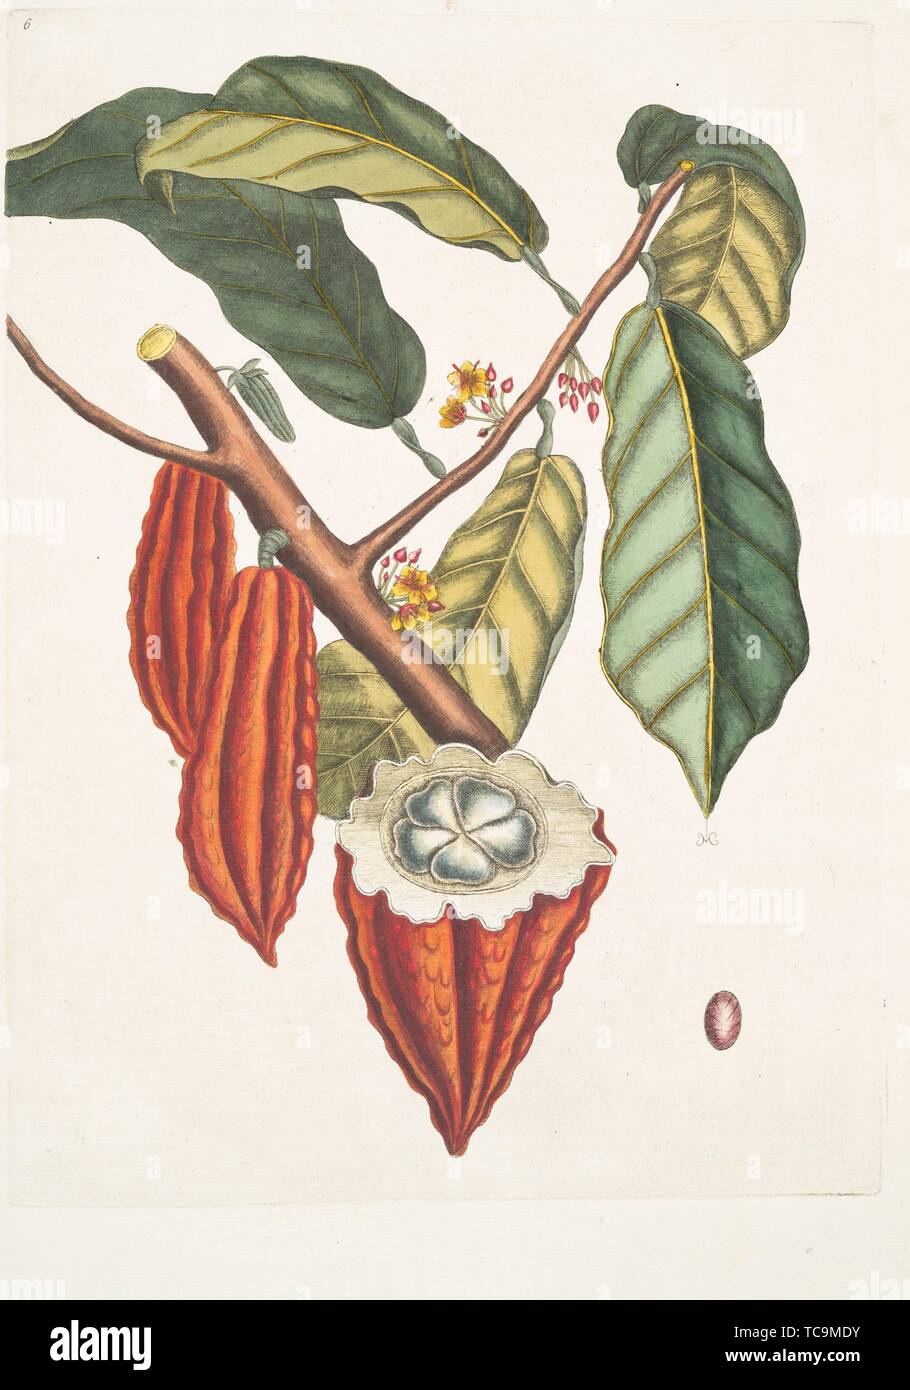 Cacao Tree Illustration High Resolution Stock Photography And Images Alamy